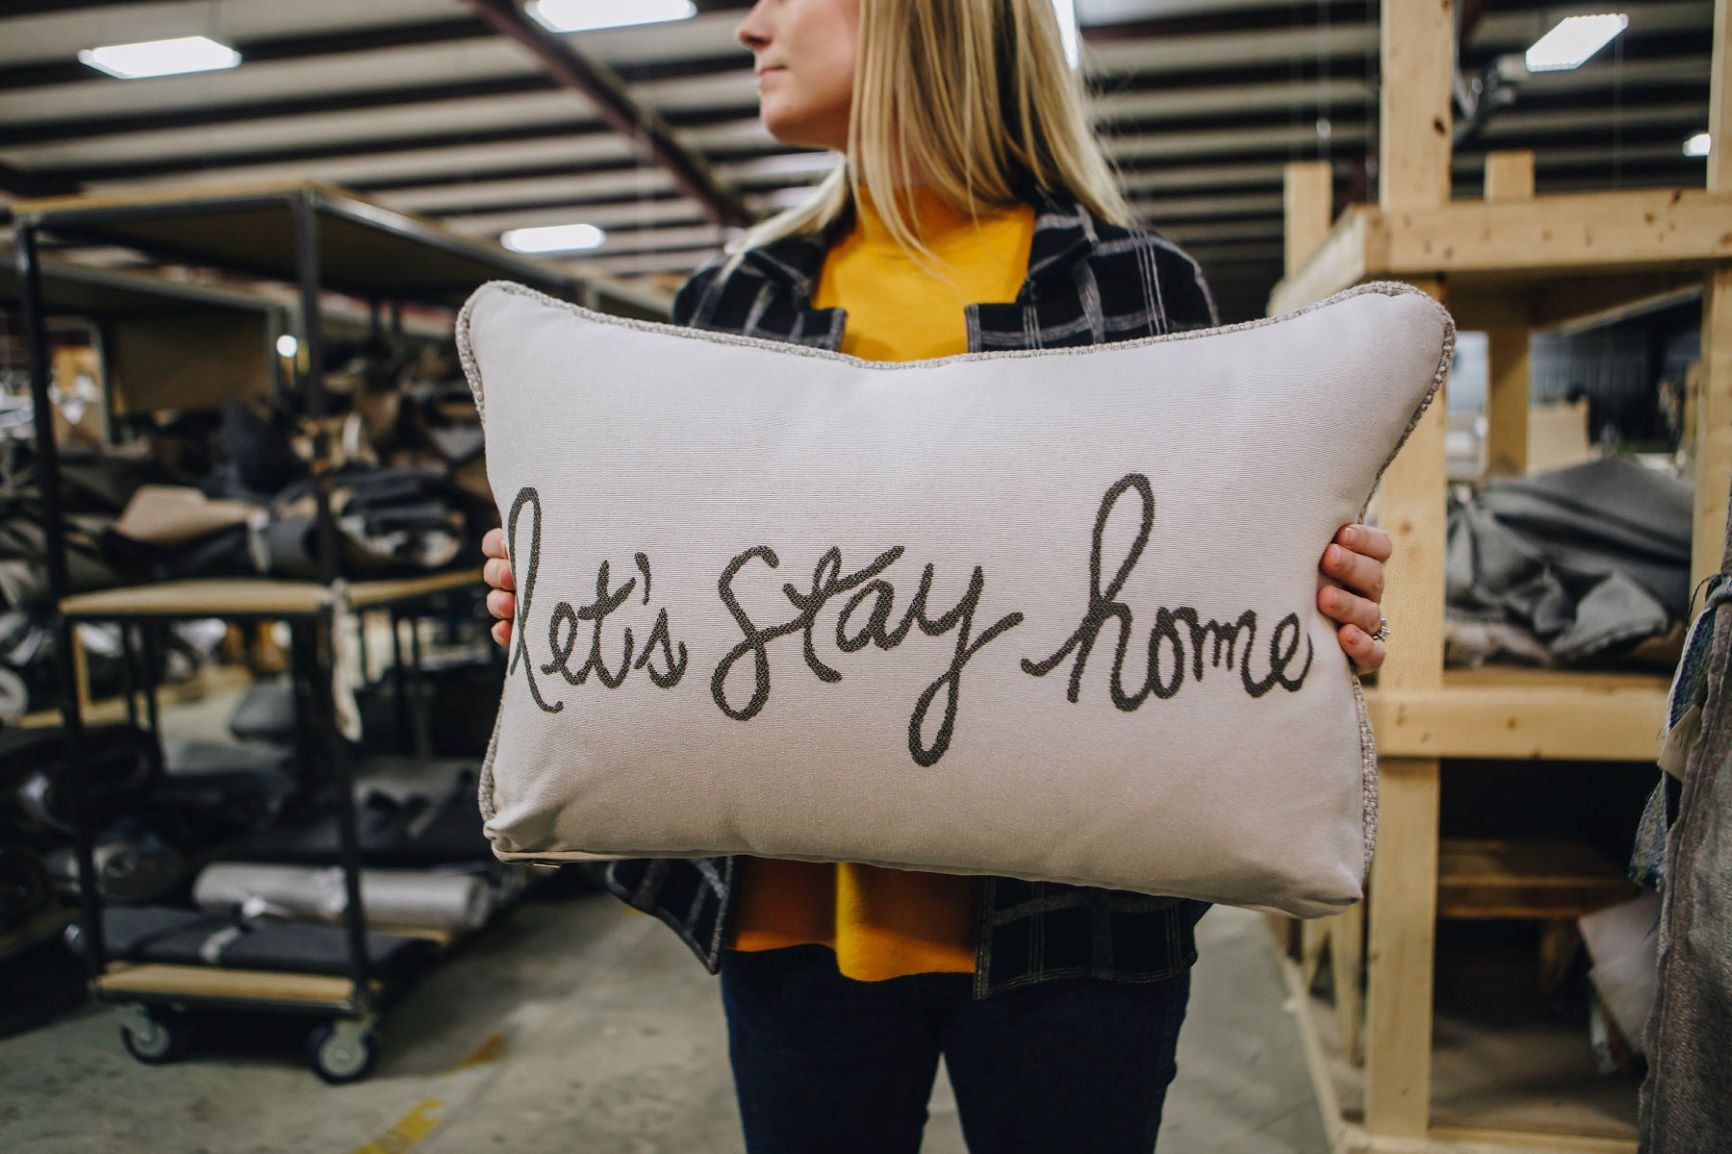 Let's stay home pillow from Fusion Furniture